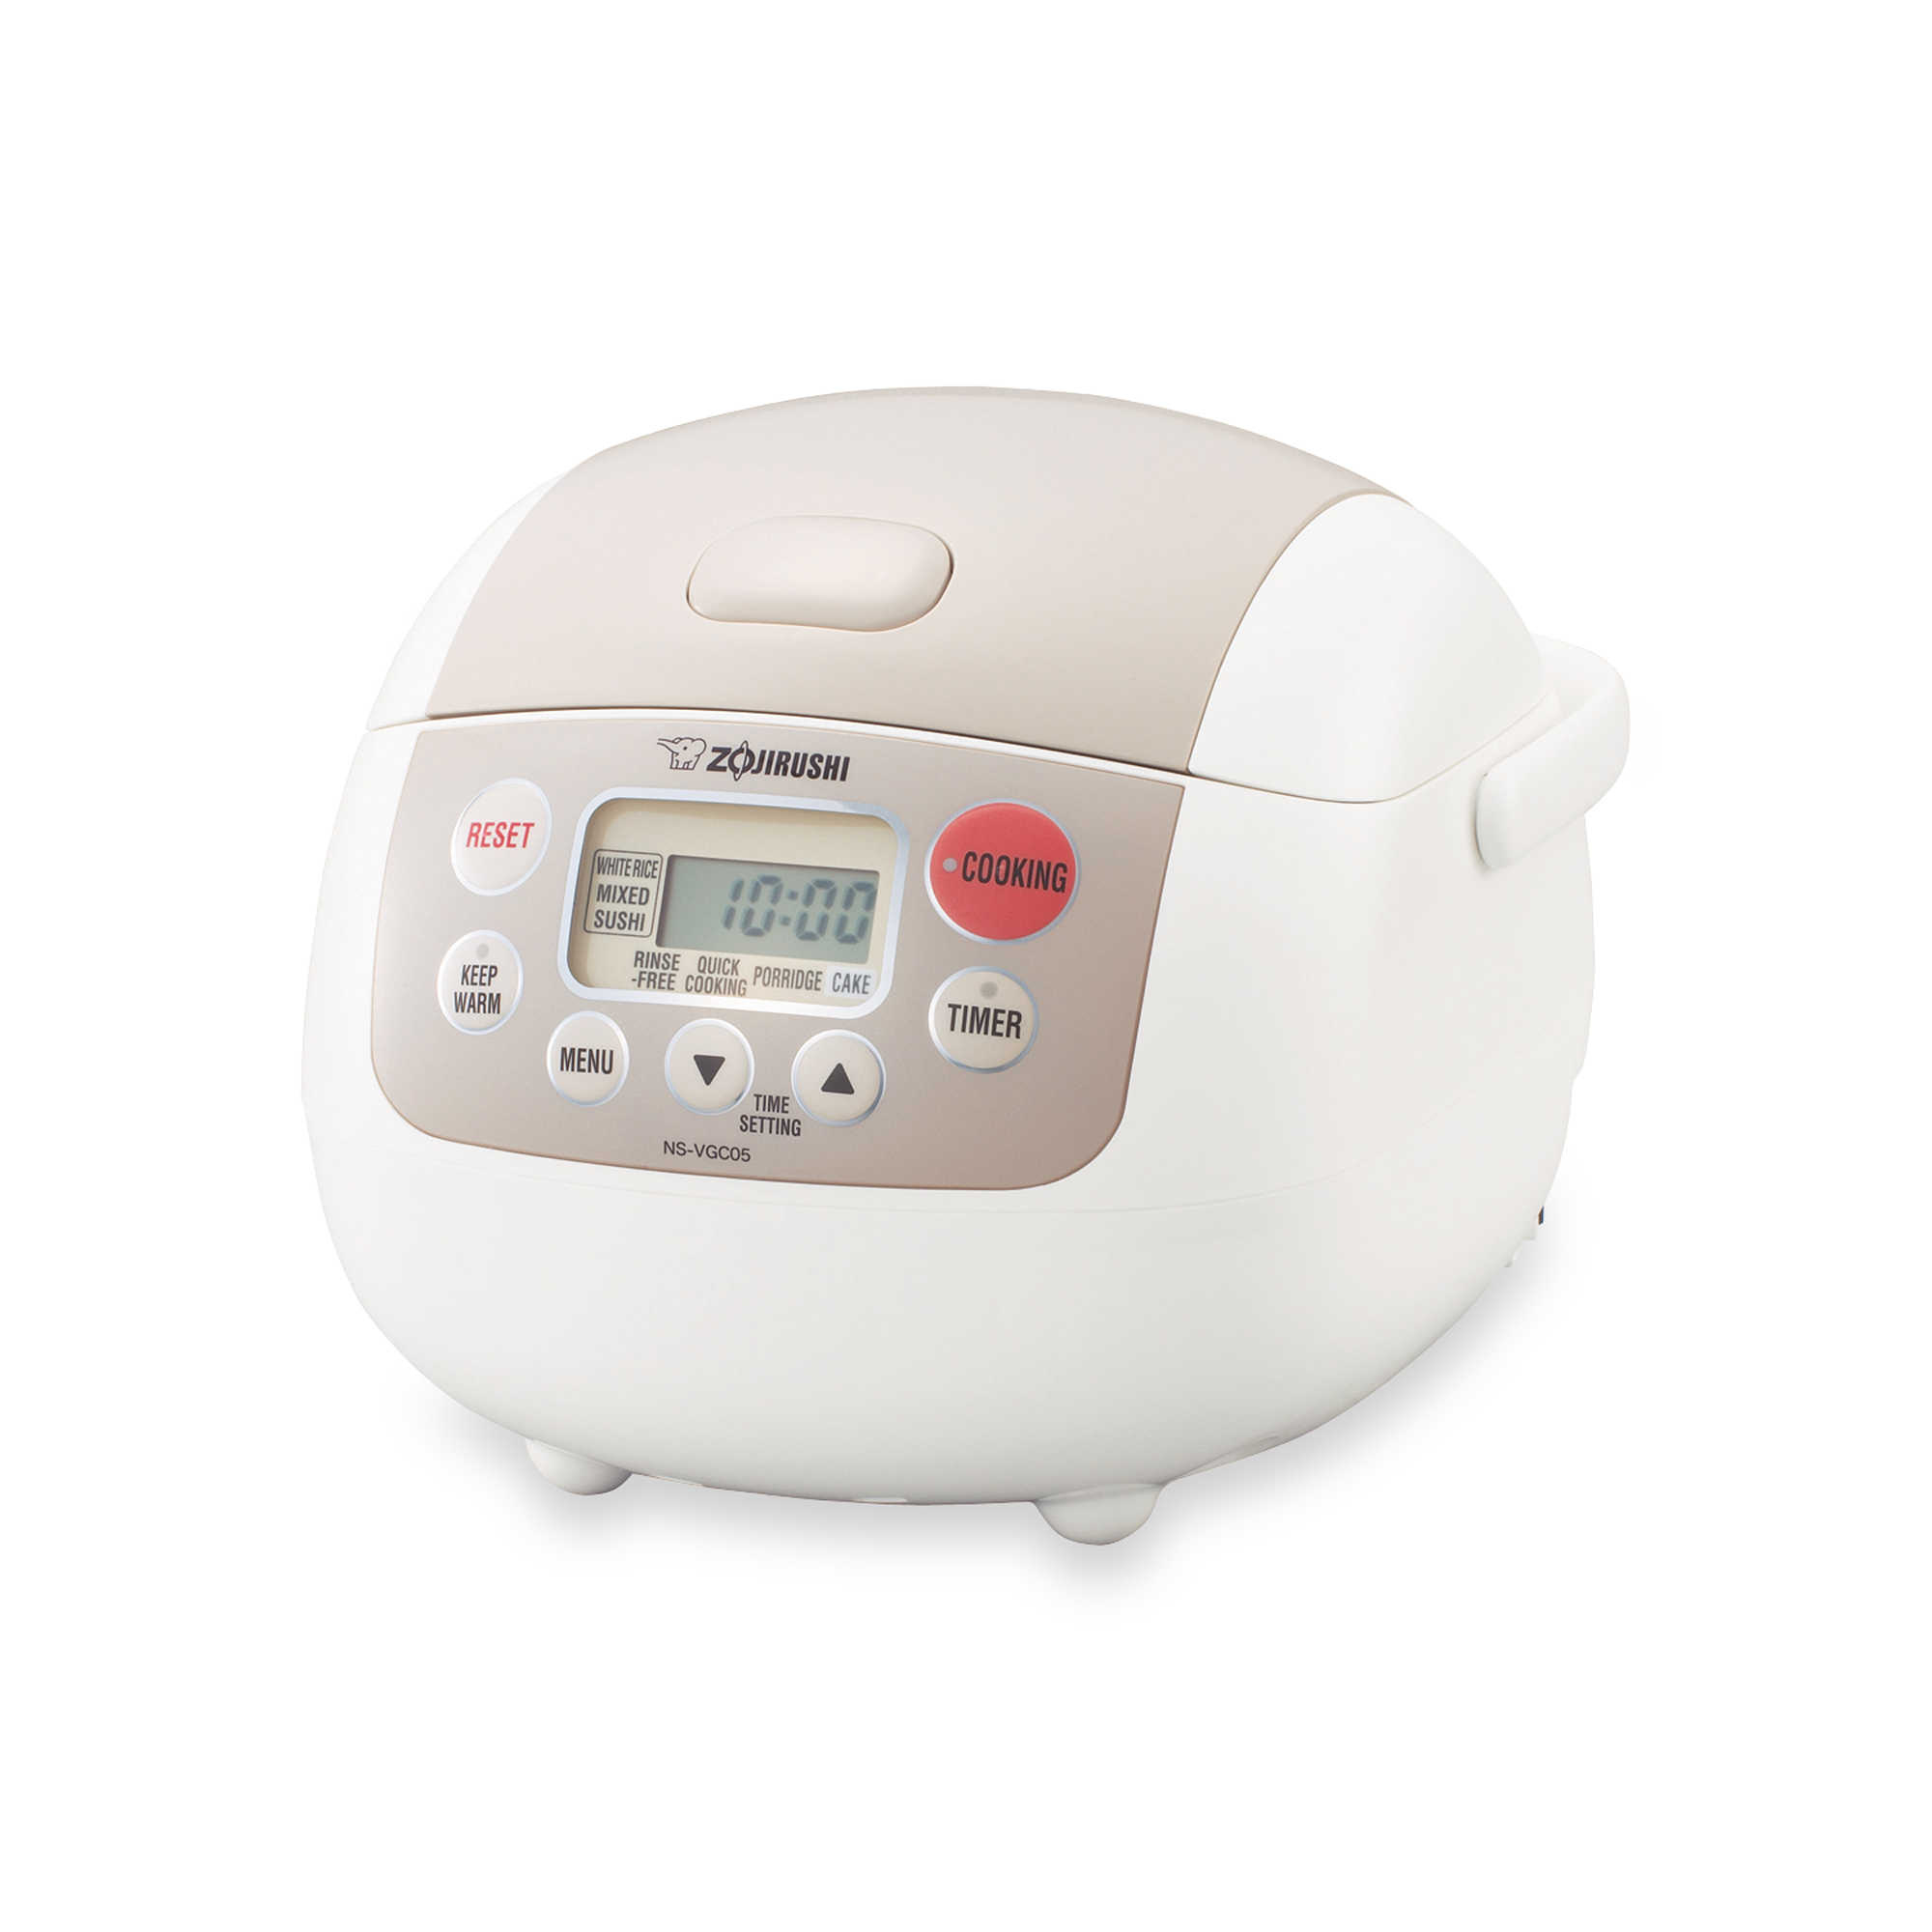 Best Japanese Rice Cooker Reviews (2019): The Top Brands